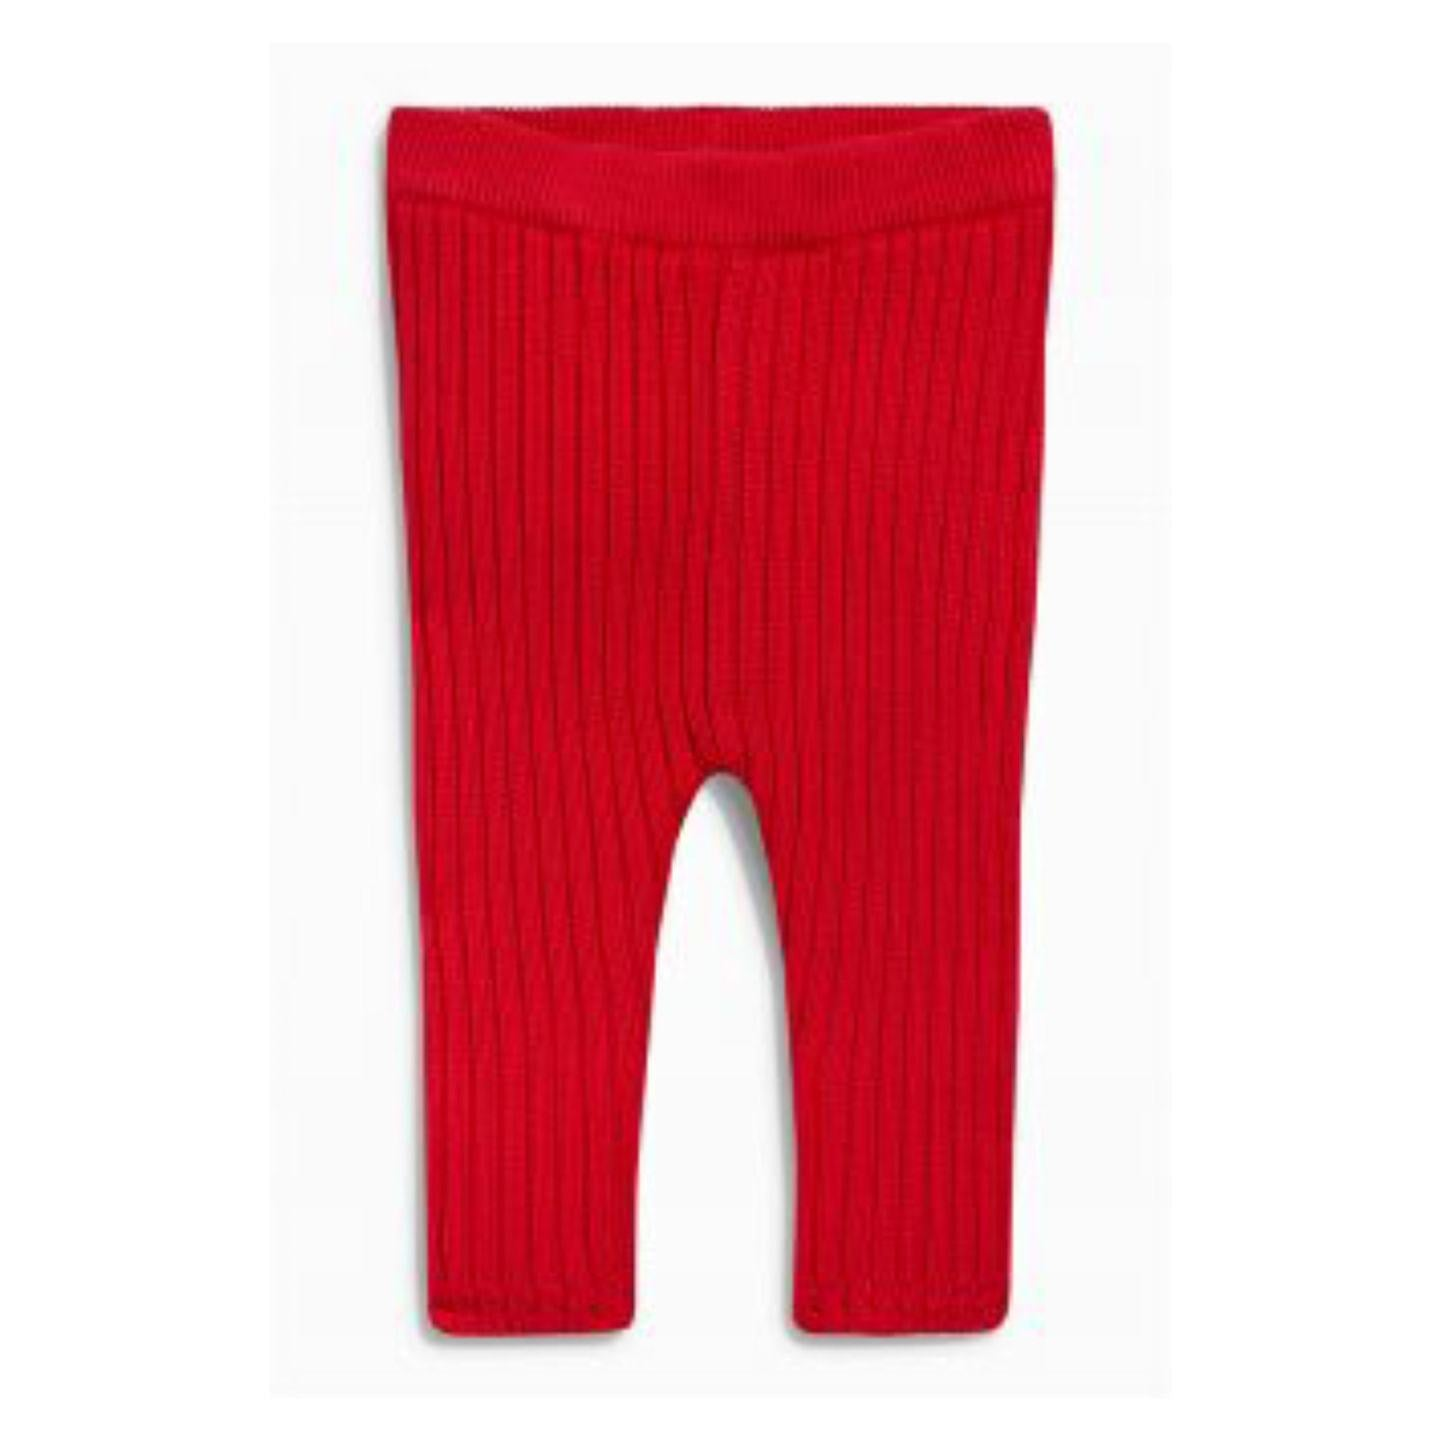 Next Red Knitted Leggings - Stockpoint Apparel Outlet